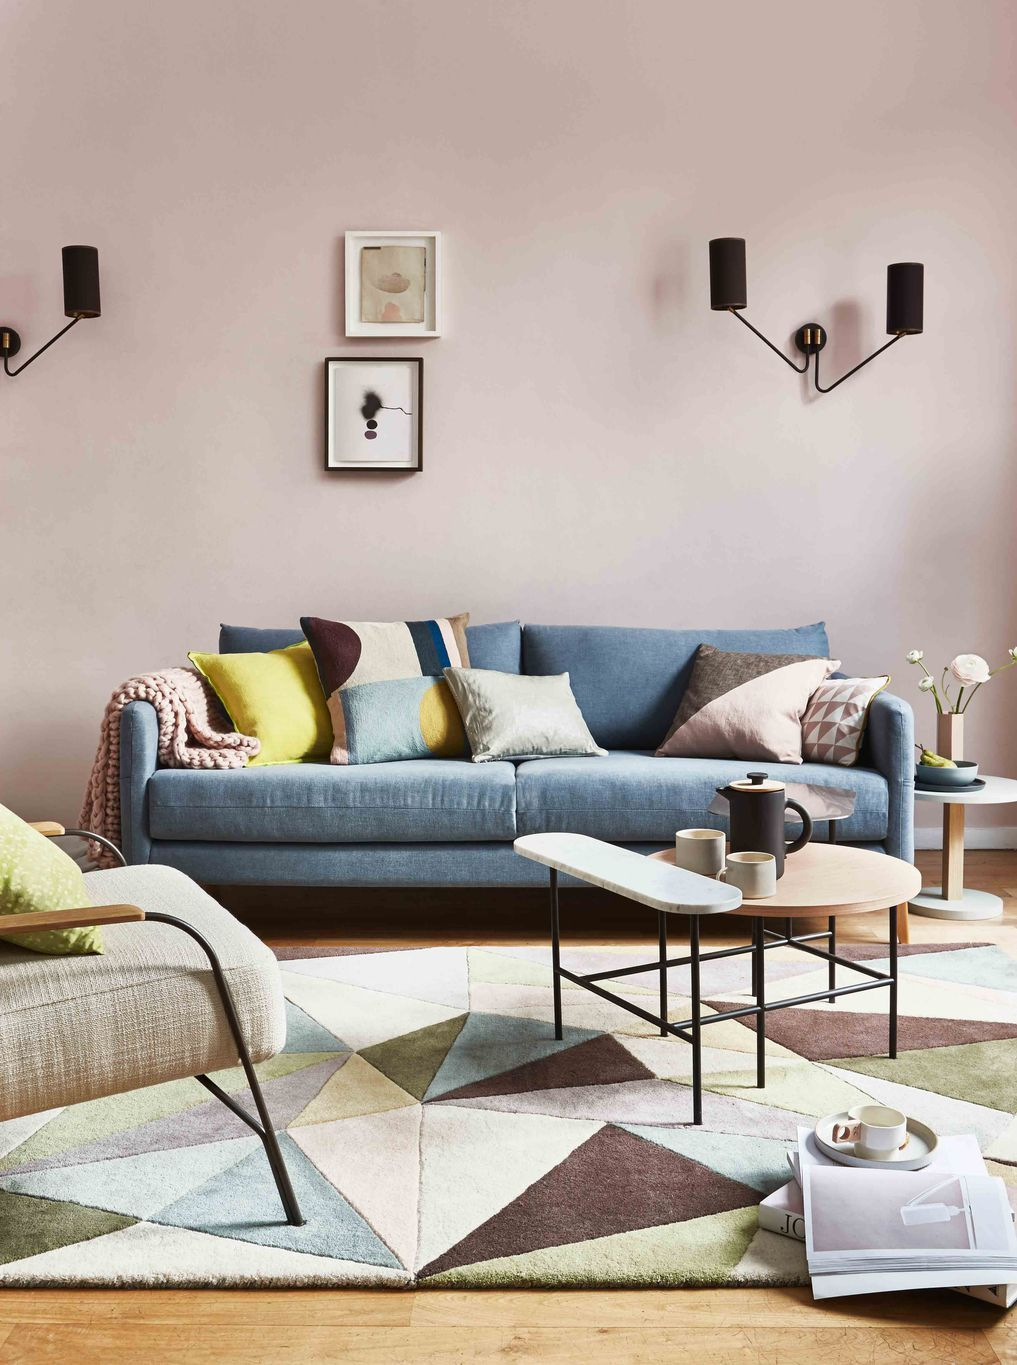 7 Neutral Modern Room Schemes That Will Make You Want To Redecorate Living Room Color Schemes Living Room Colors Room Color Schemes